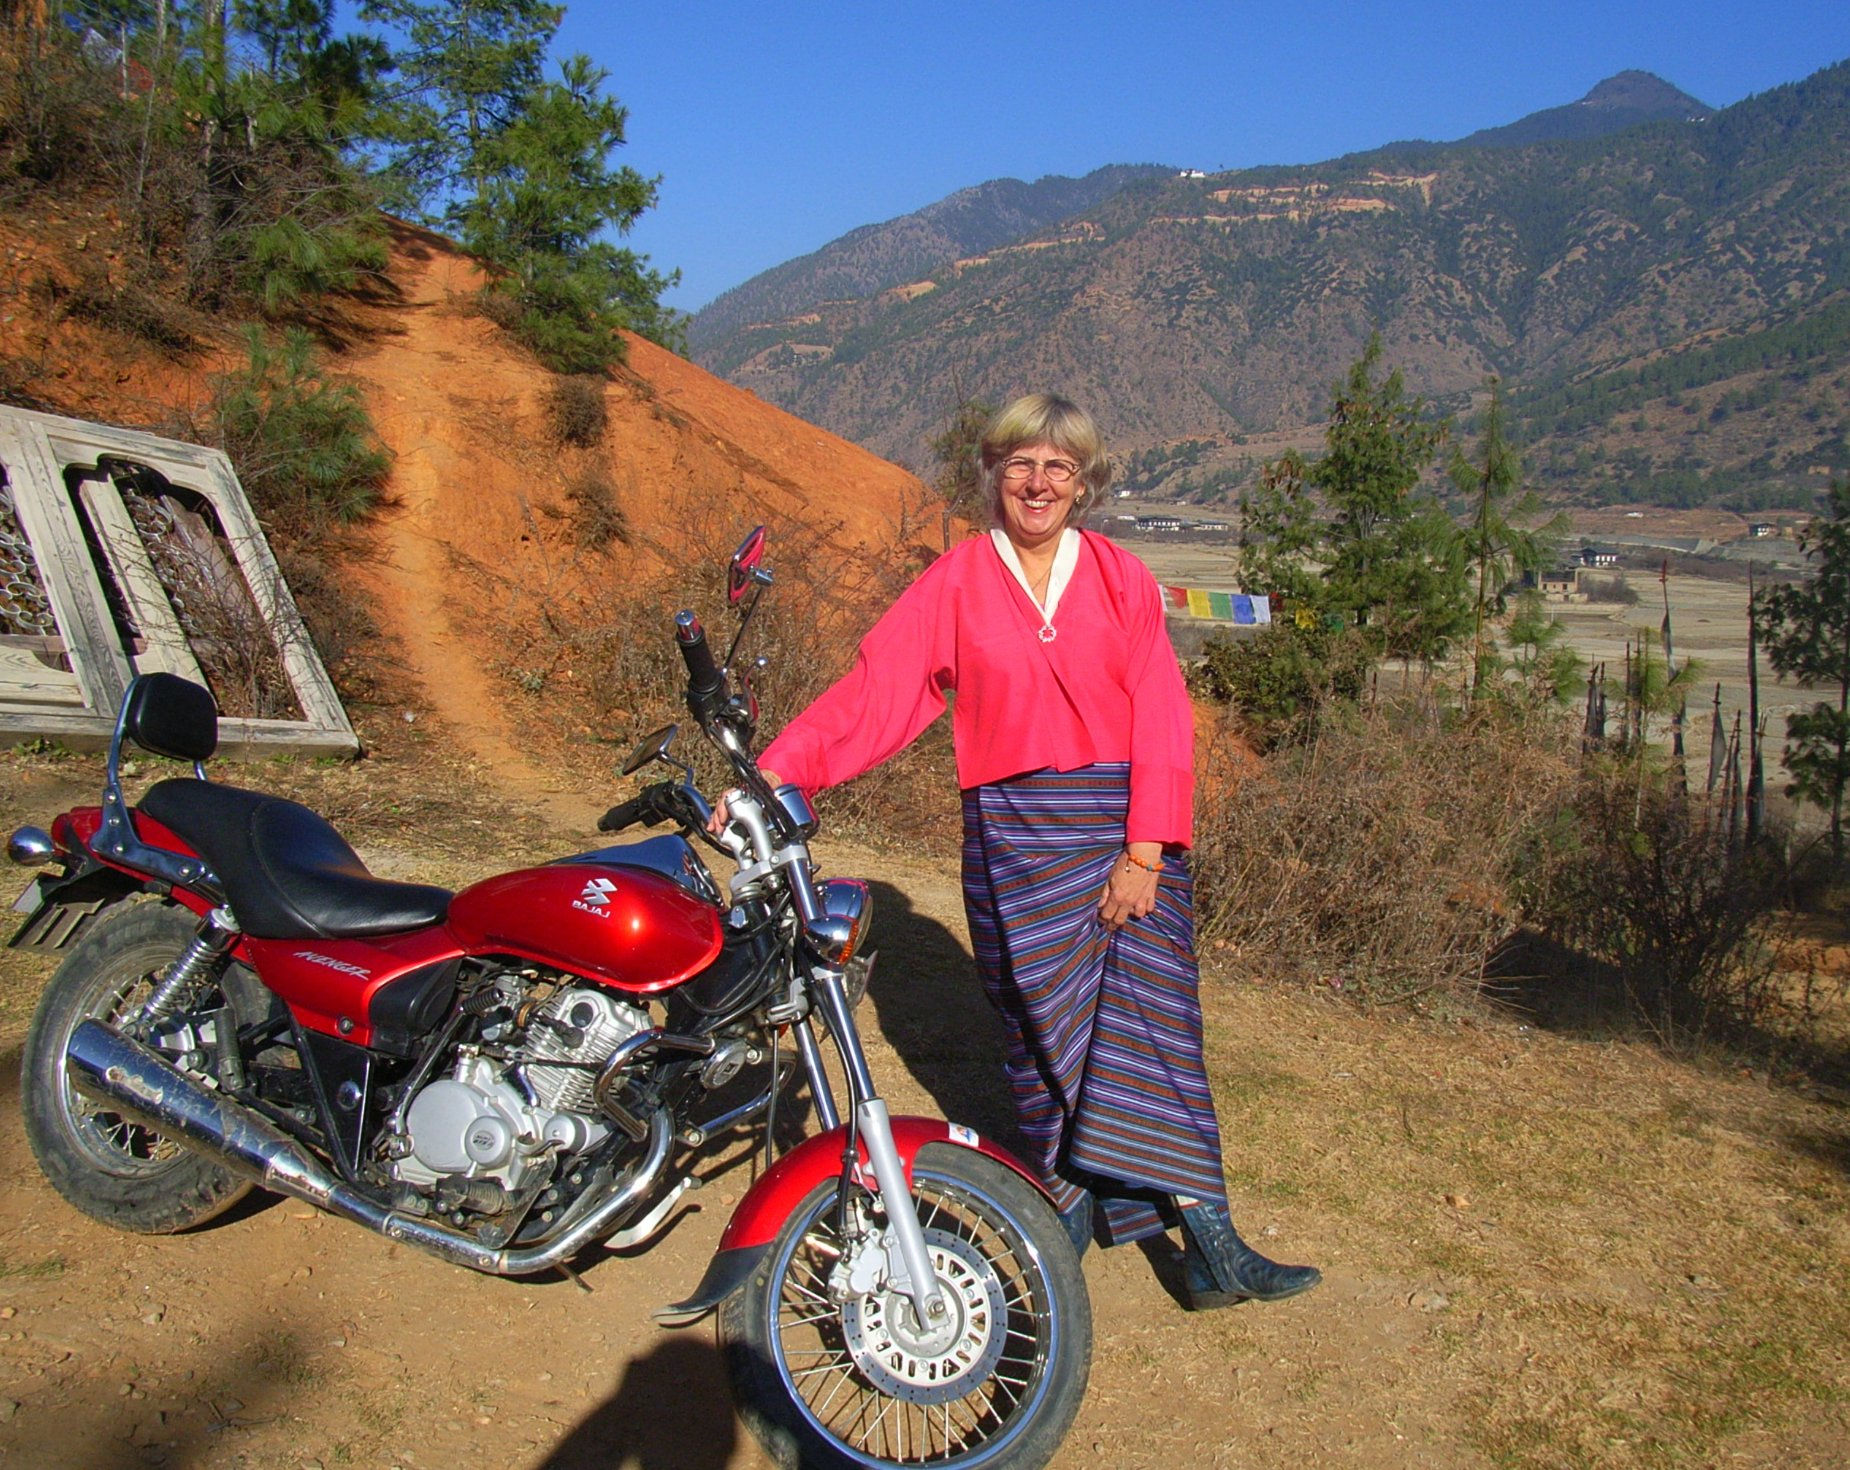 bhutan, i did ride in my alpine star boots but not the bhutanese outfit. my guide rode in a car with his driver.